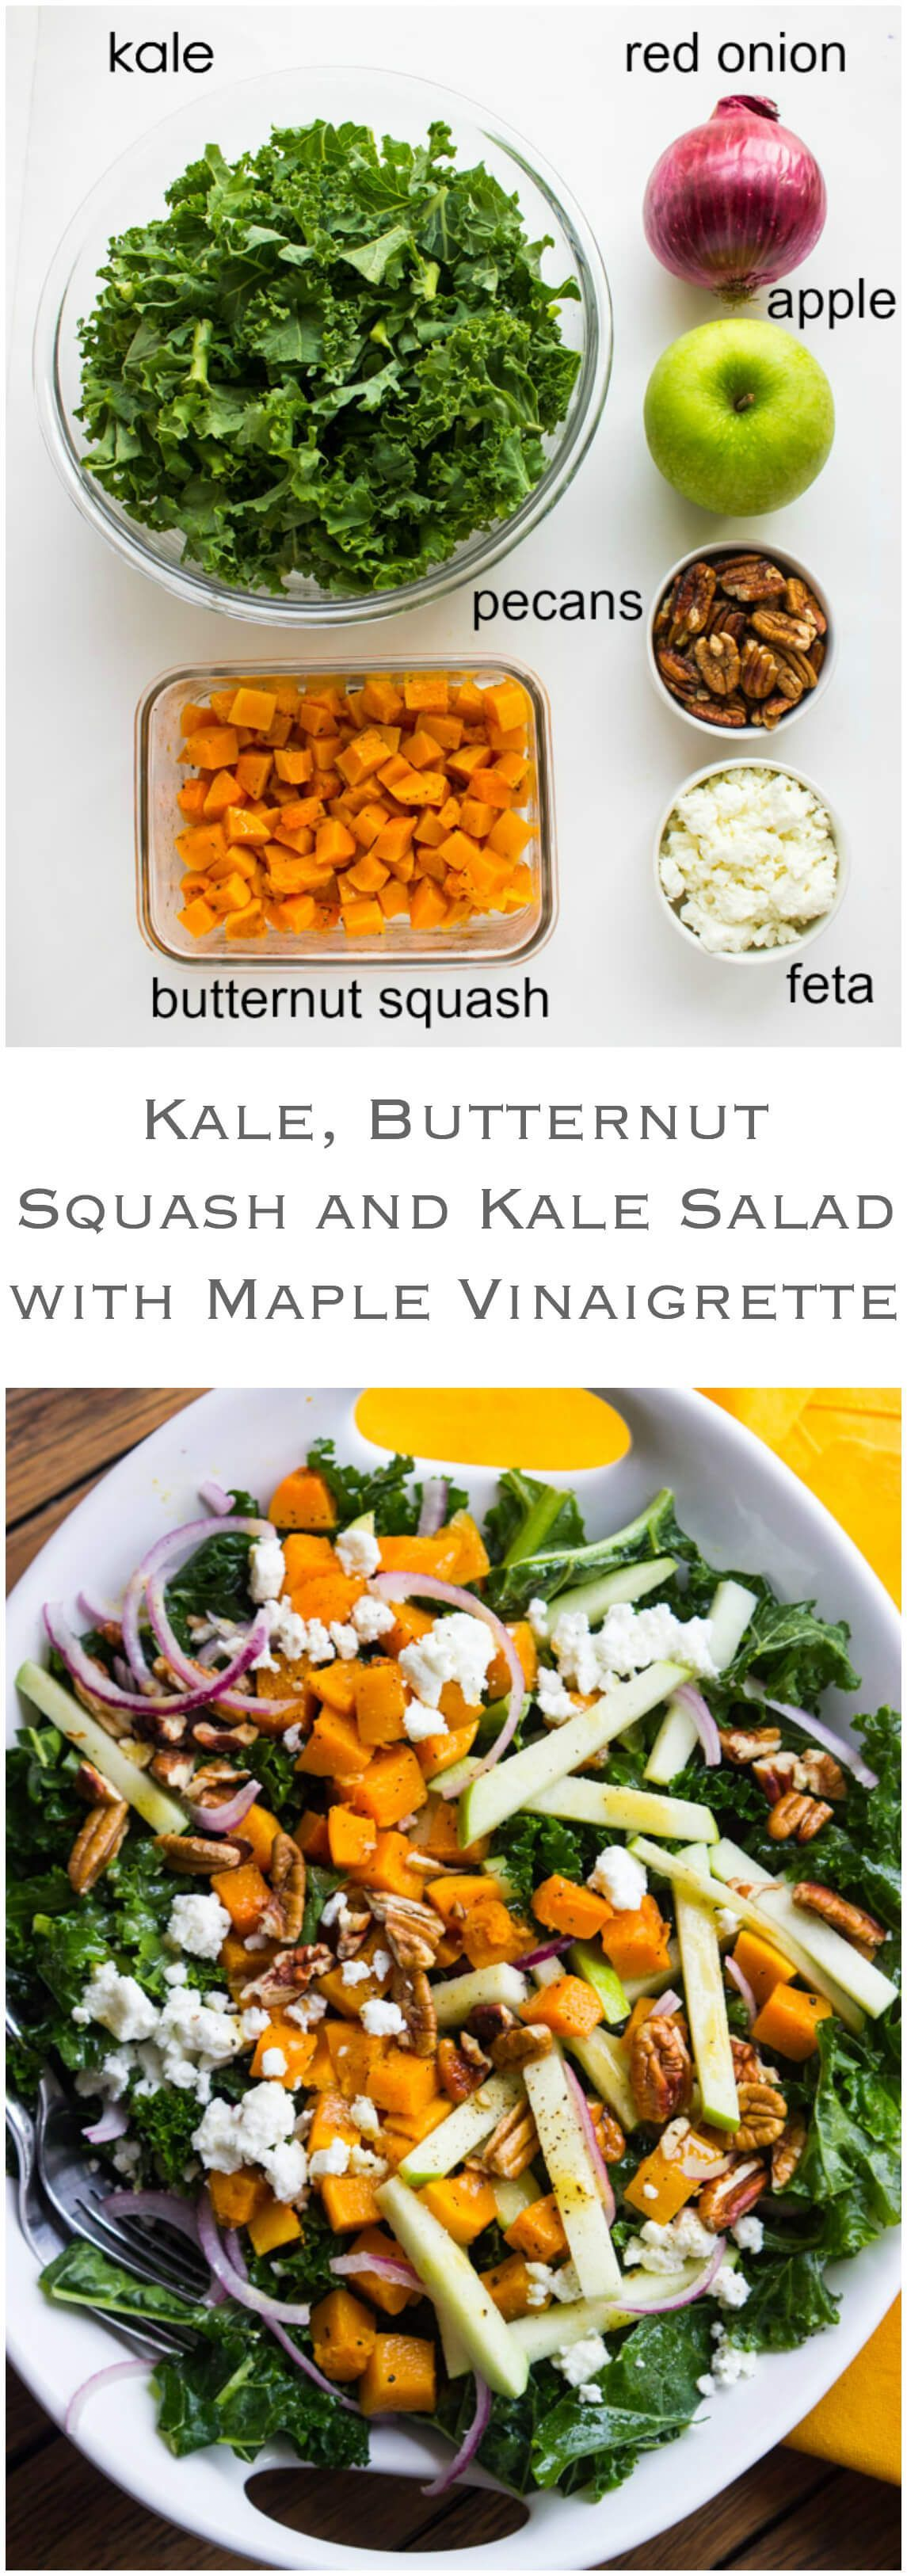 Butternut Squash and Apple Salad with Maple Vinaigrette Kale, Butternut Squash and Apple Salad - healthy kale greens with roasted butternut squash and tart apple, tossed with feta, pecans in a zesty-sweet maple vinaigrette |  @littlebrokenKale, Butternut Squash and Apple Salad - healthy kale greens with roasted butternut squash and tart apple...